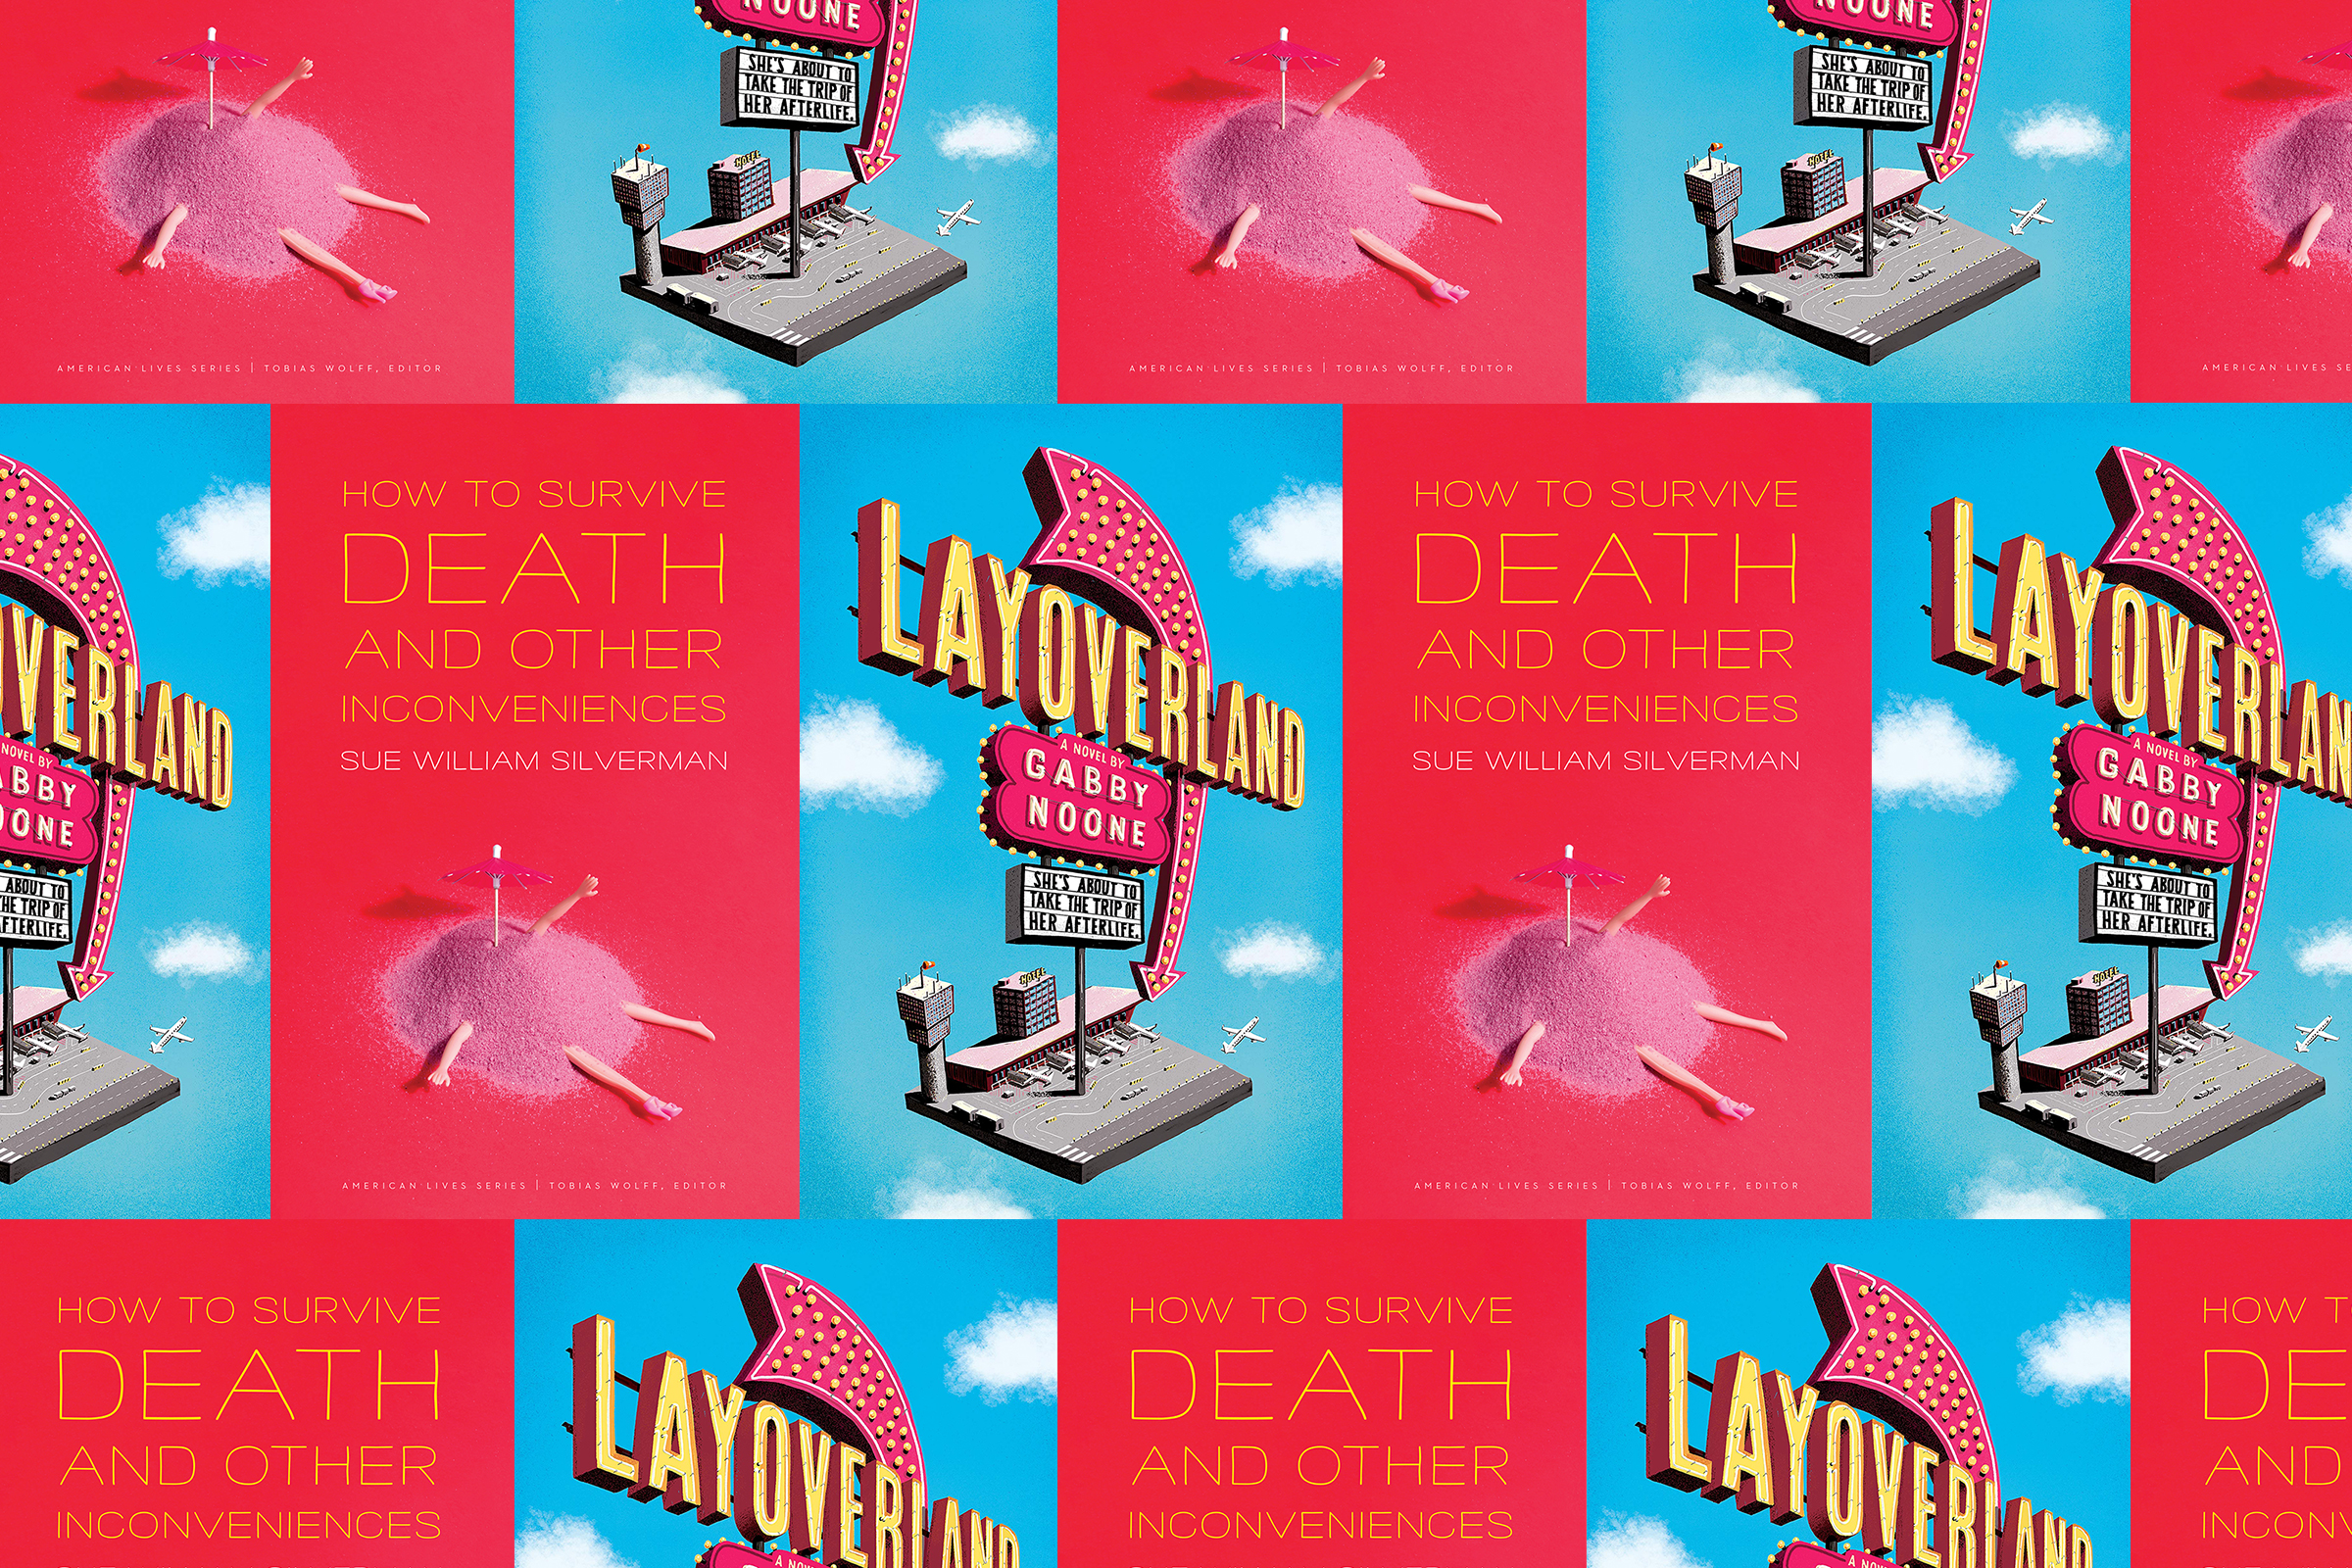 two books: Layoverland, a blue cover that features an illustration of a hotel in the sky, and How to Survive Death and Other inconveniences, a red book cover that features a Barbie buried in sand, are overlayed